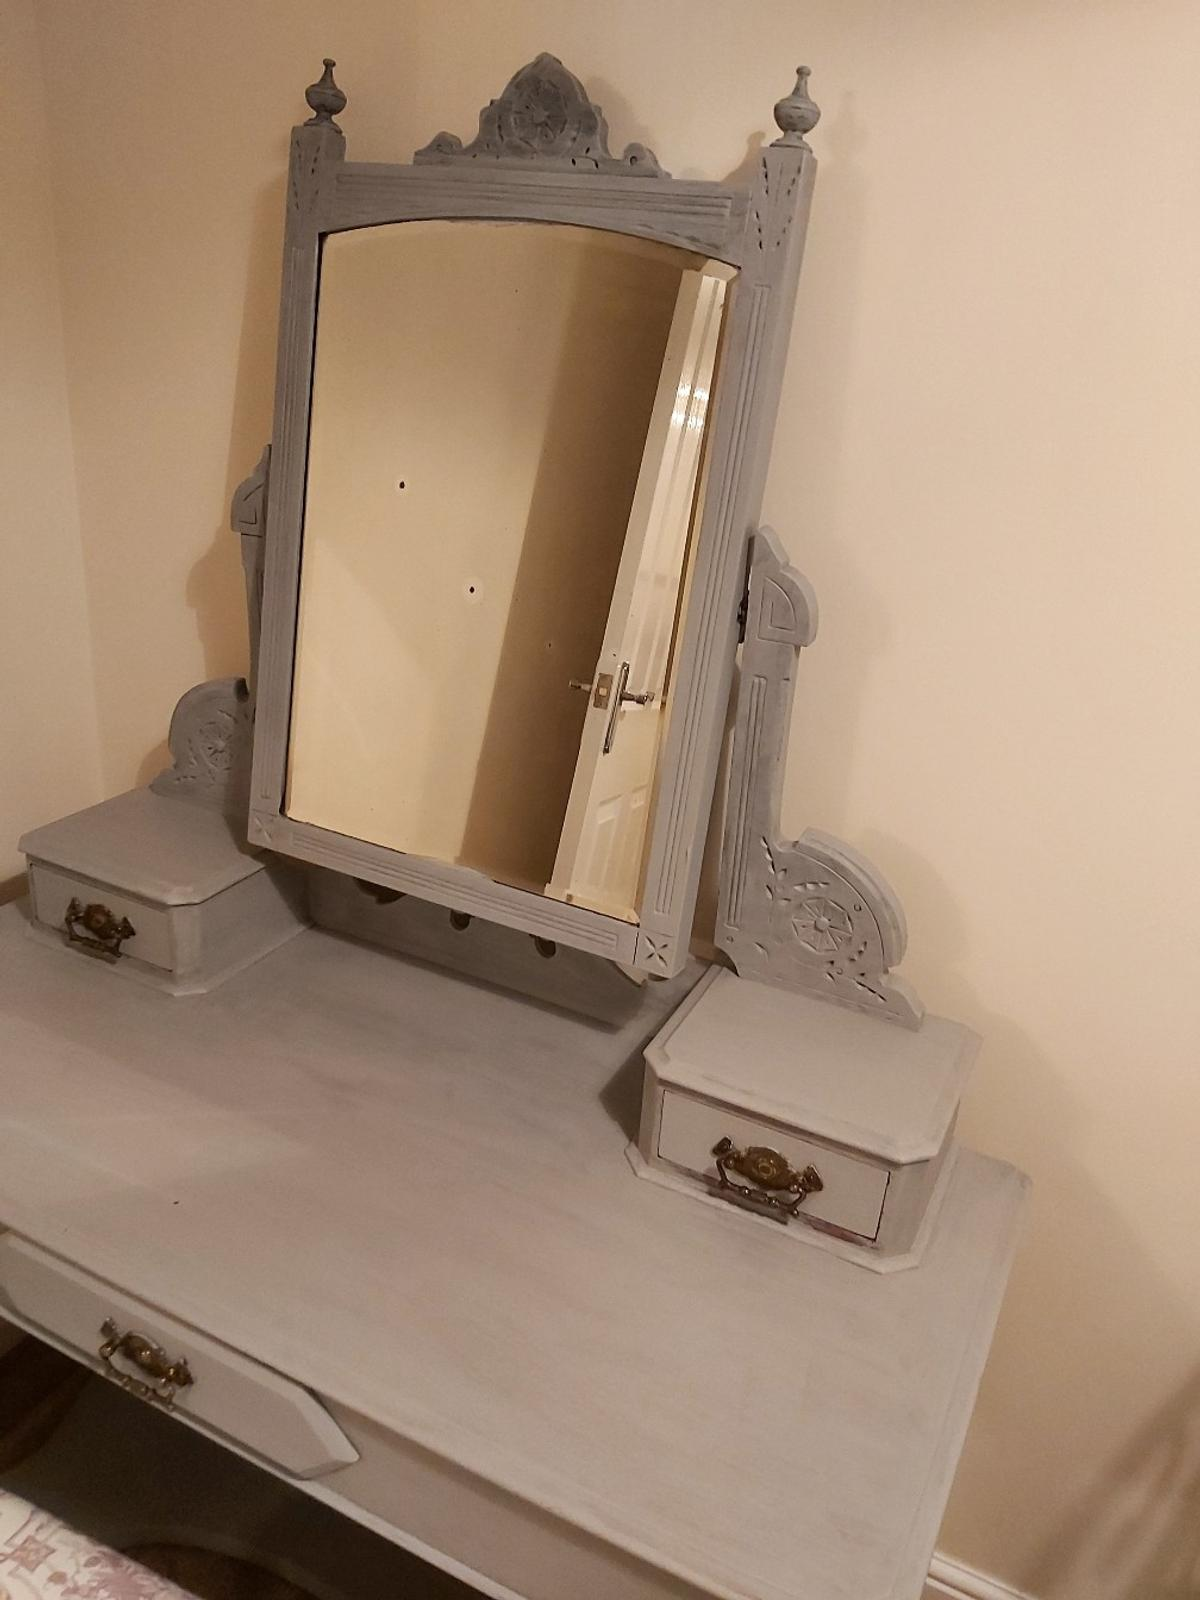 dresser&footstool for sale, originally mahongany but refurb with grey paint and footstool with Laura Ashley material, wear on mirror and mirror needs new screws as loose but a great dresser and only needs a bit if TLC, collection only S63 Wath